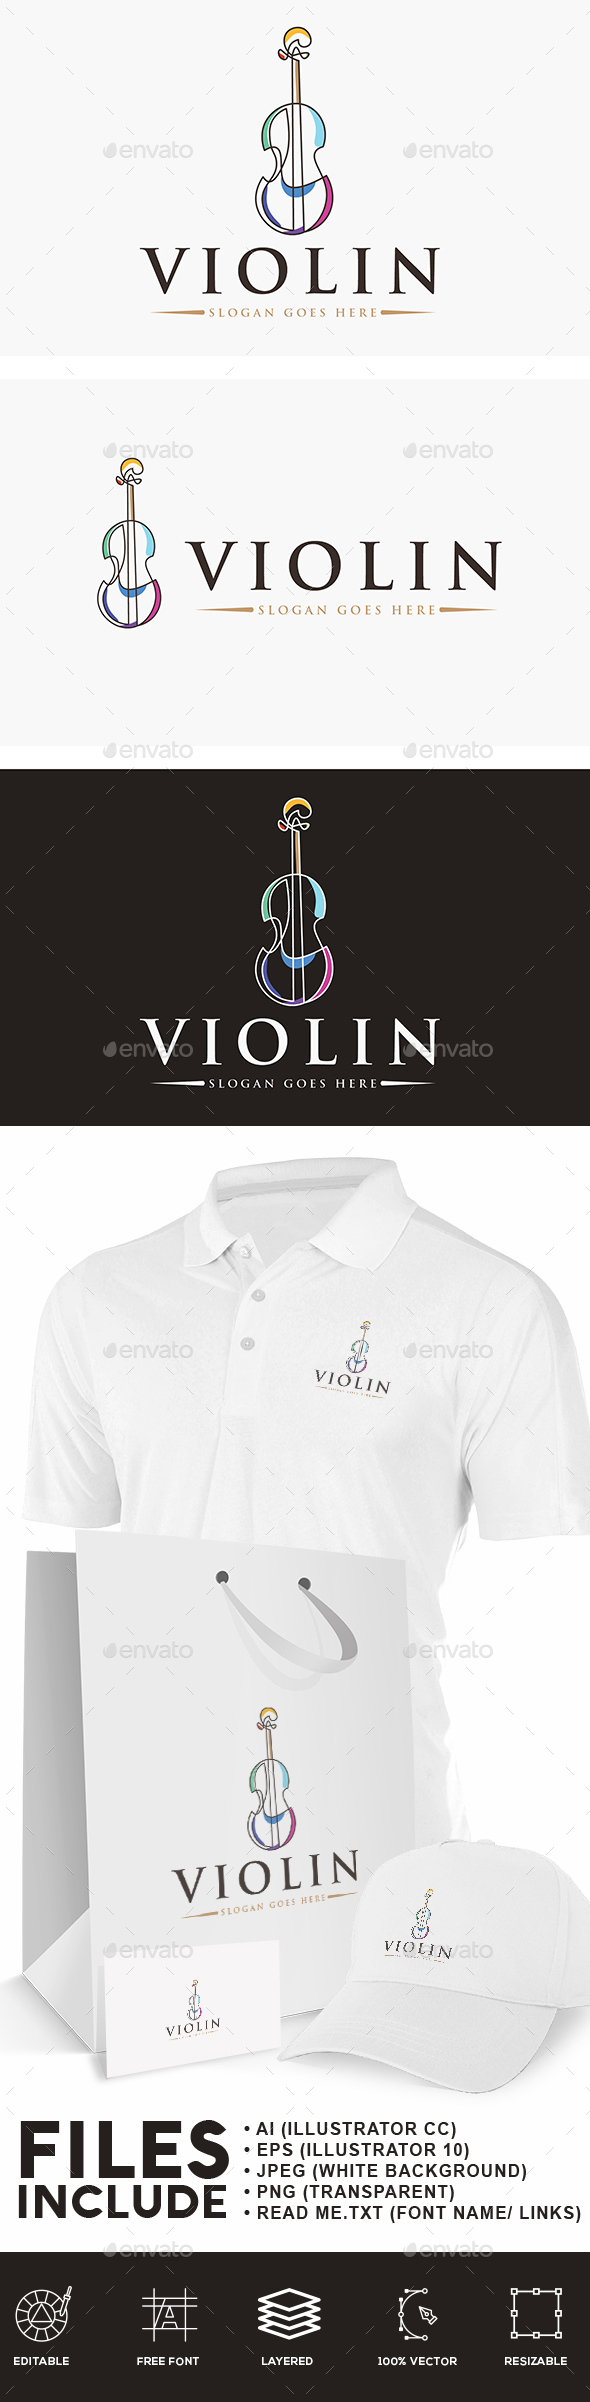 Violin Continuous Line Logo - Objects Logo Templates